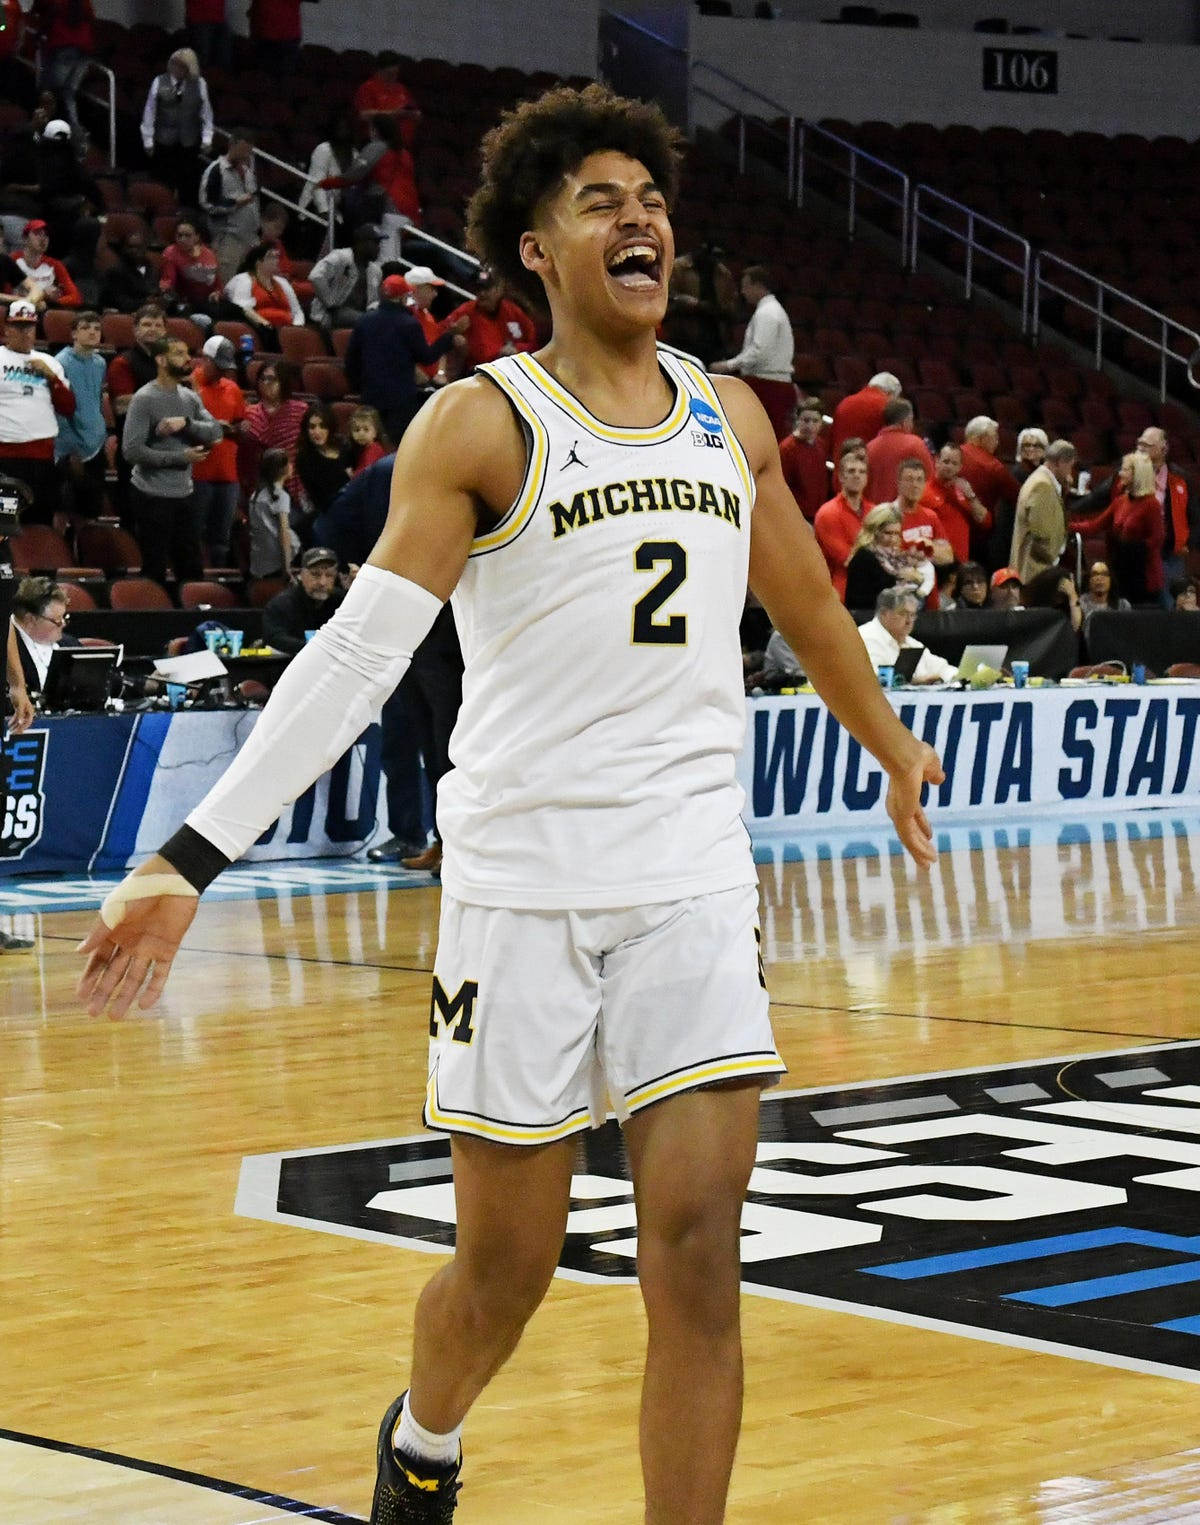 release date 2a3fc efb3b Michigan's Jordan Poole rolls with buzz stoked by buzzer ...